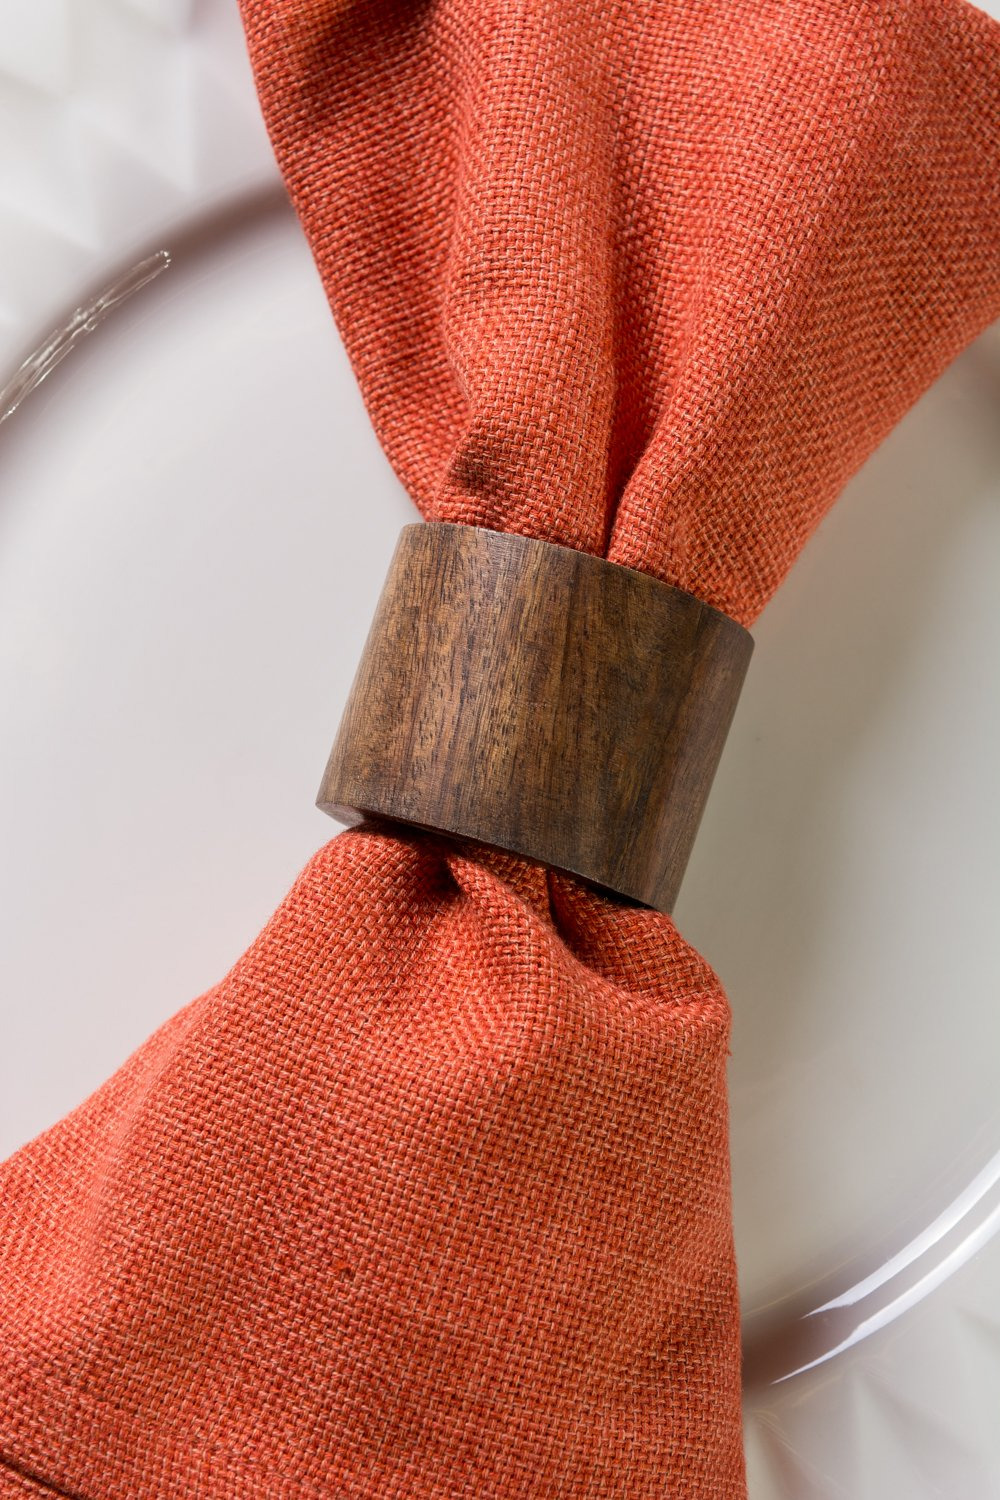 DII Rustic Chic Napkin Rings for Dinner Parties, Weddings Receptions, Family Gatherings, or Everyday Use, Set Your Table With Style - Wood Band, Set of 6 by DII (Image #5)